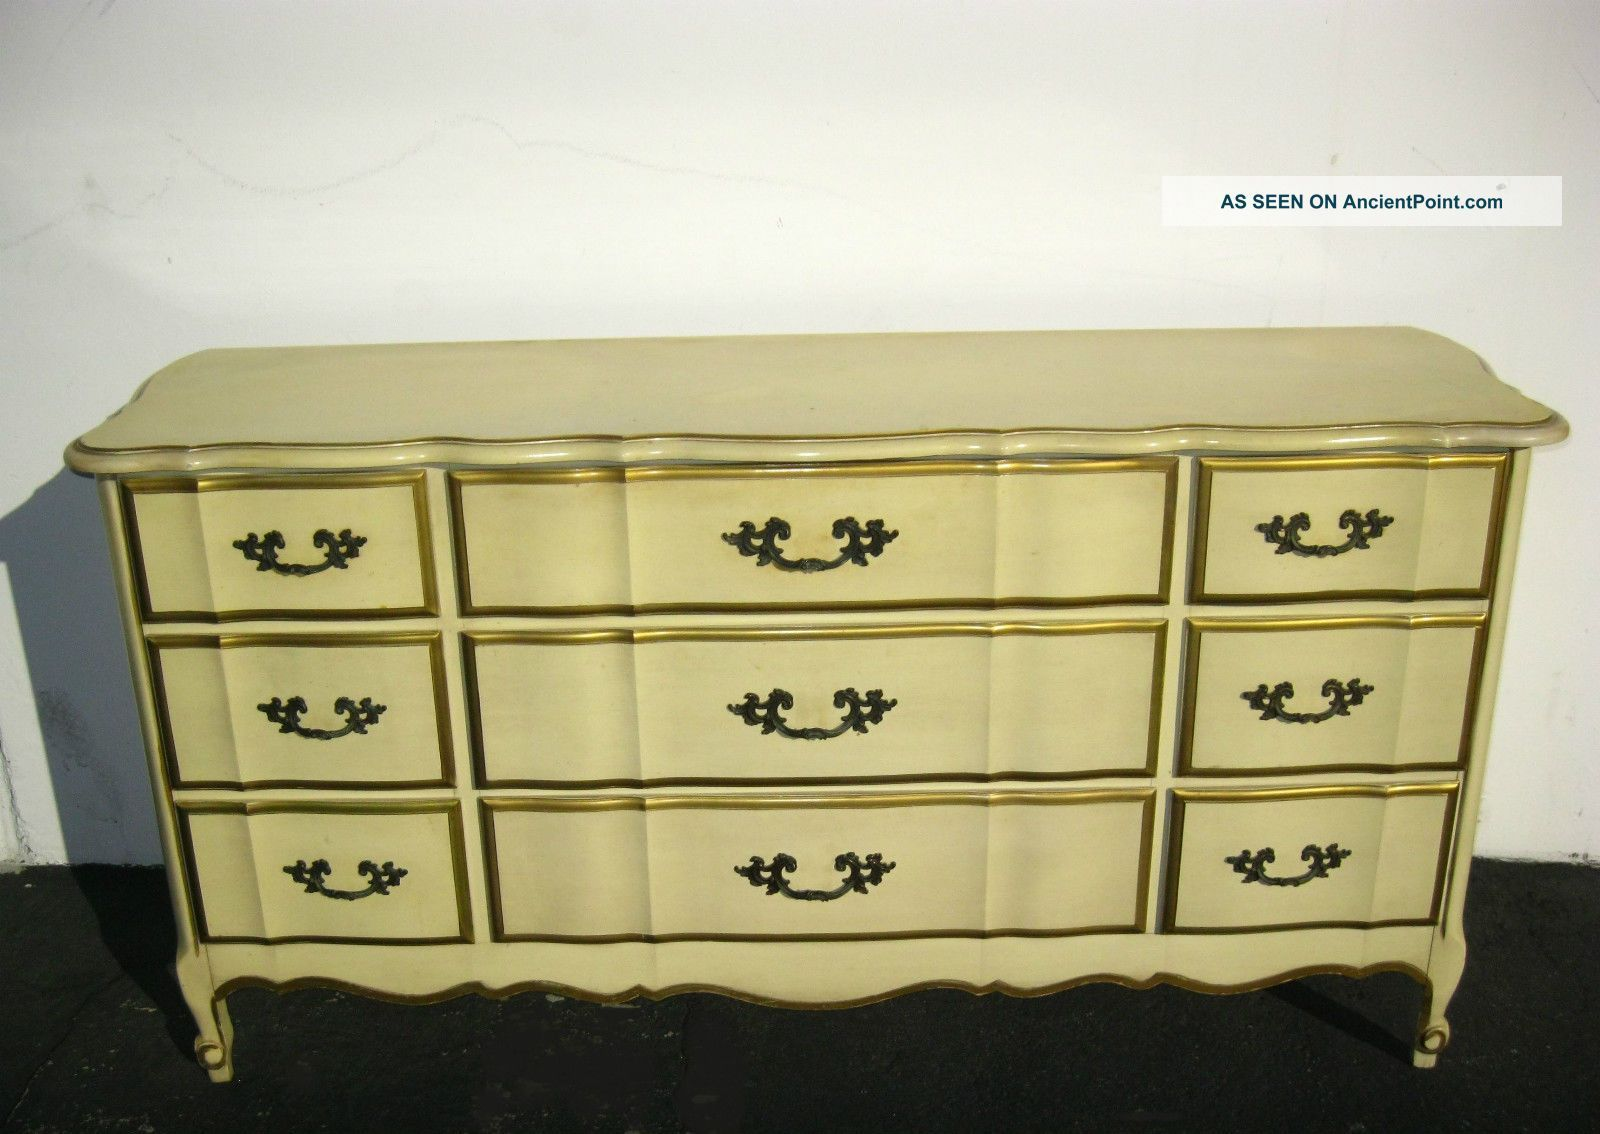 Lot Art Vintage French Provincial Style Dresser With